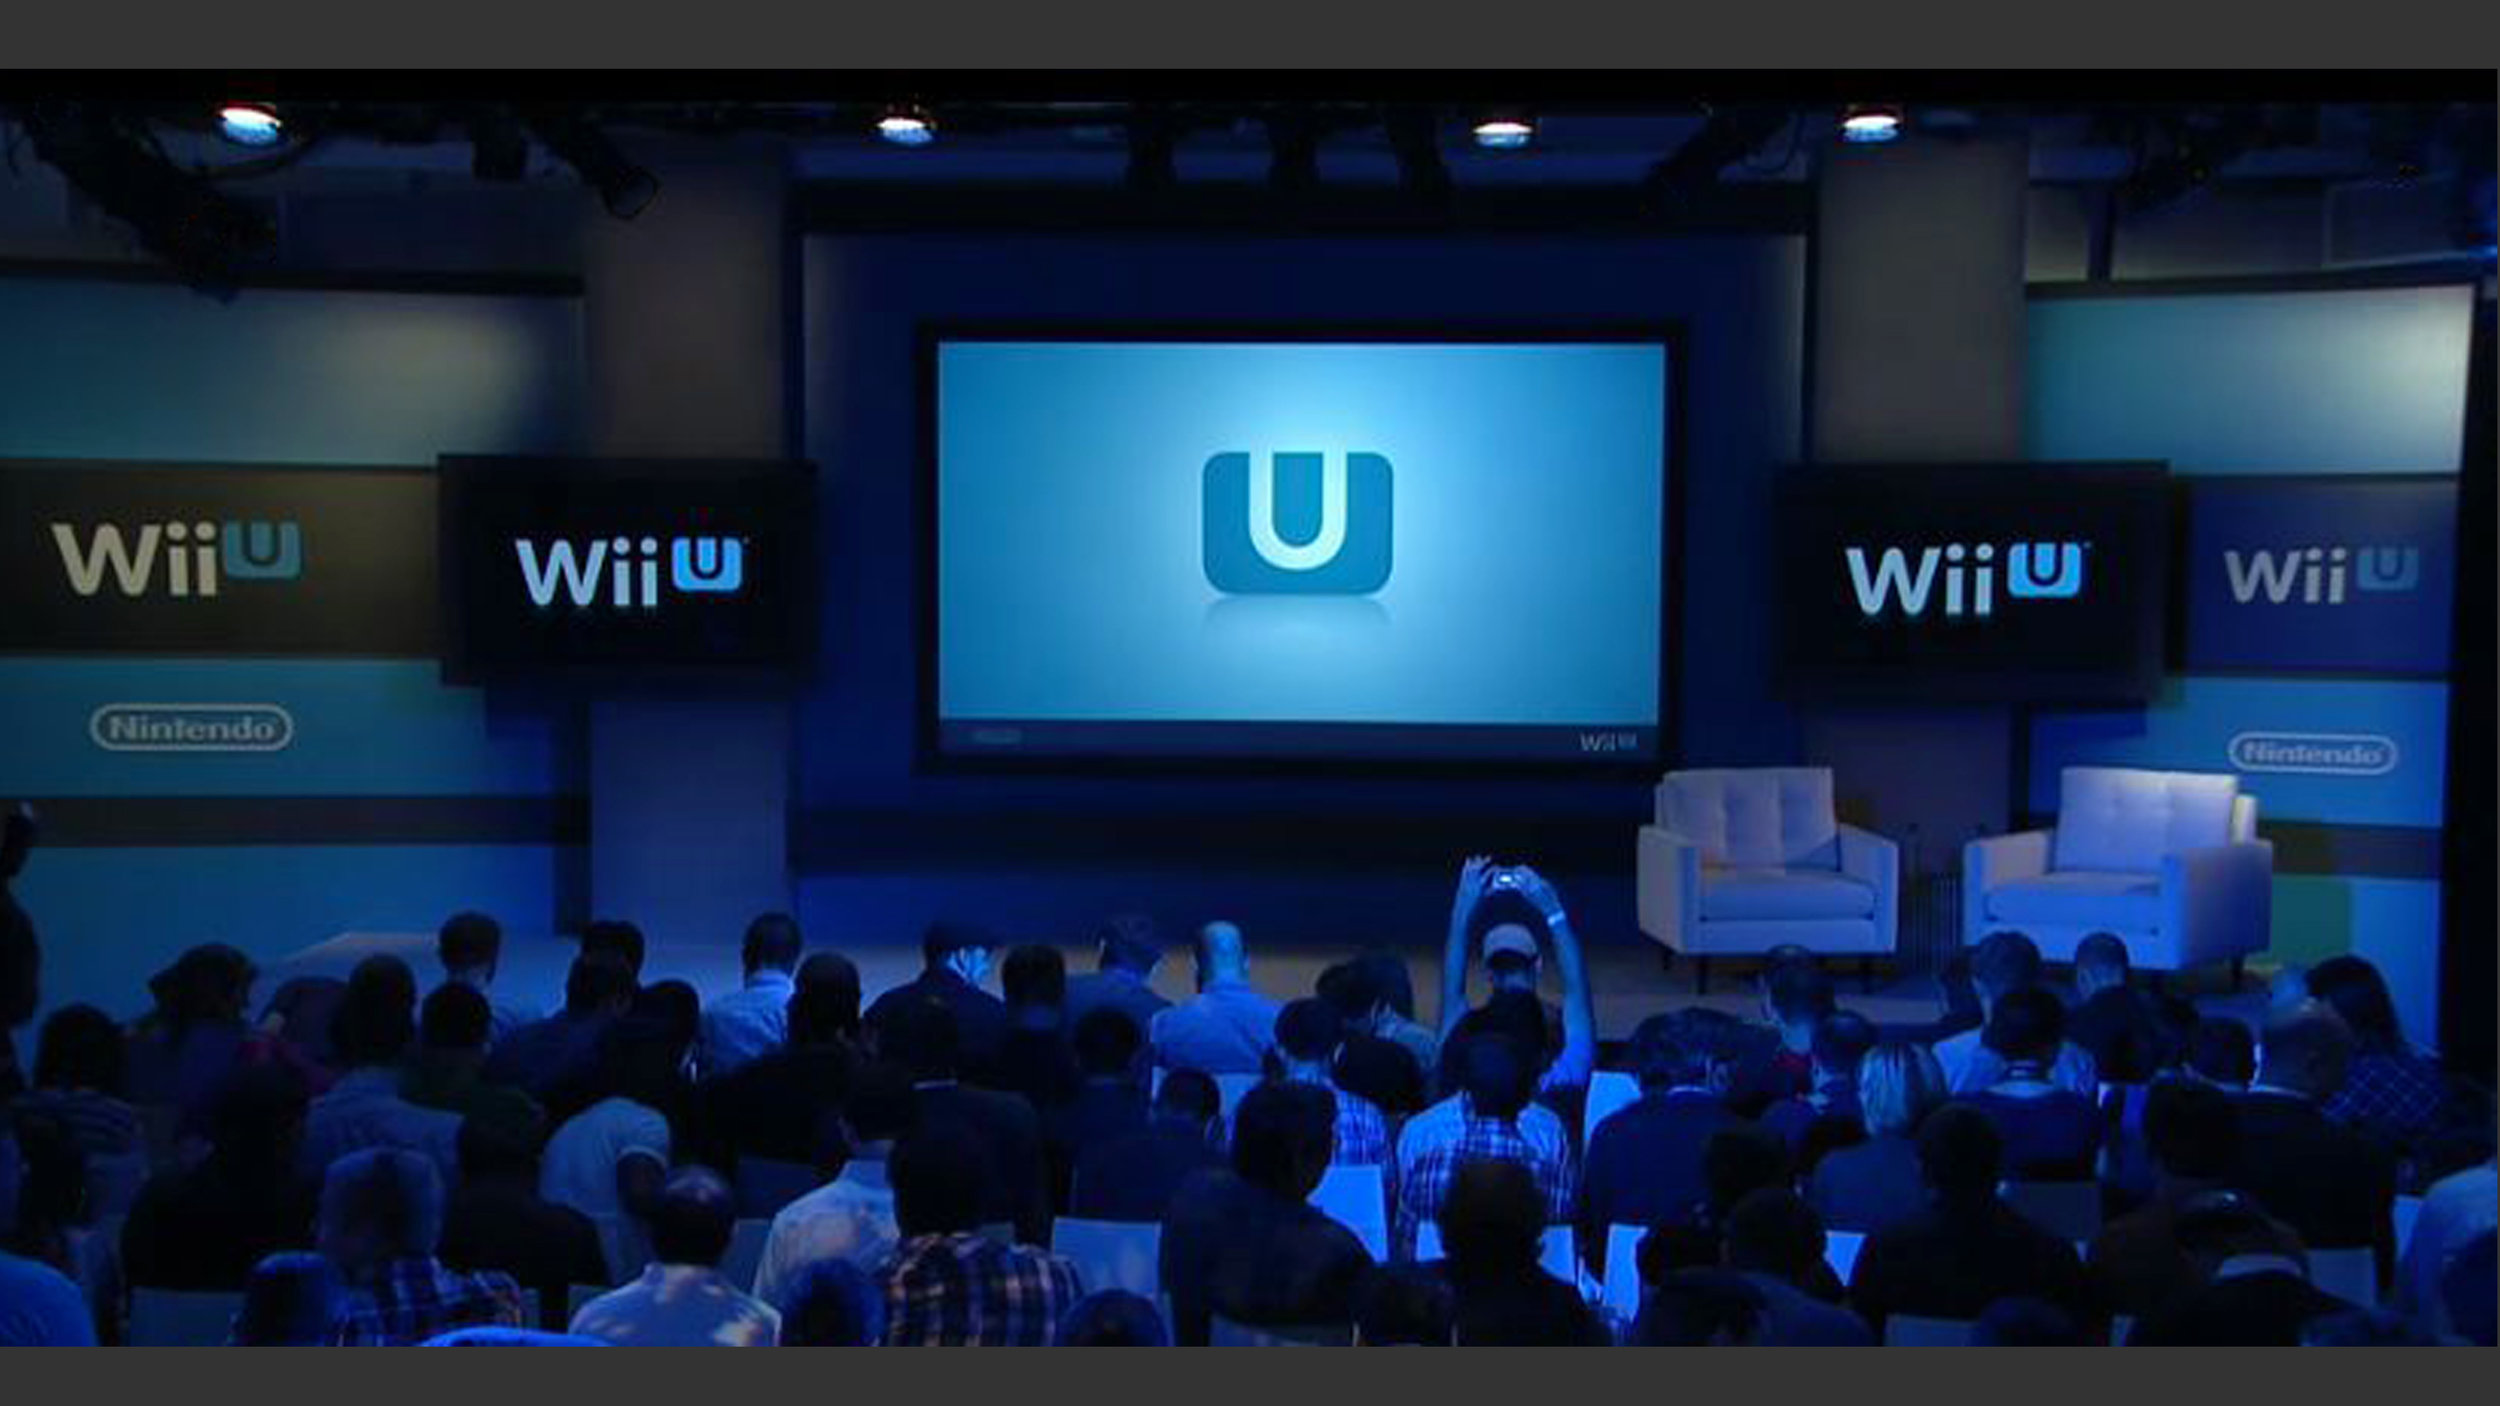 wii-u-preview-event-1 EDITED.jpg